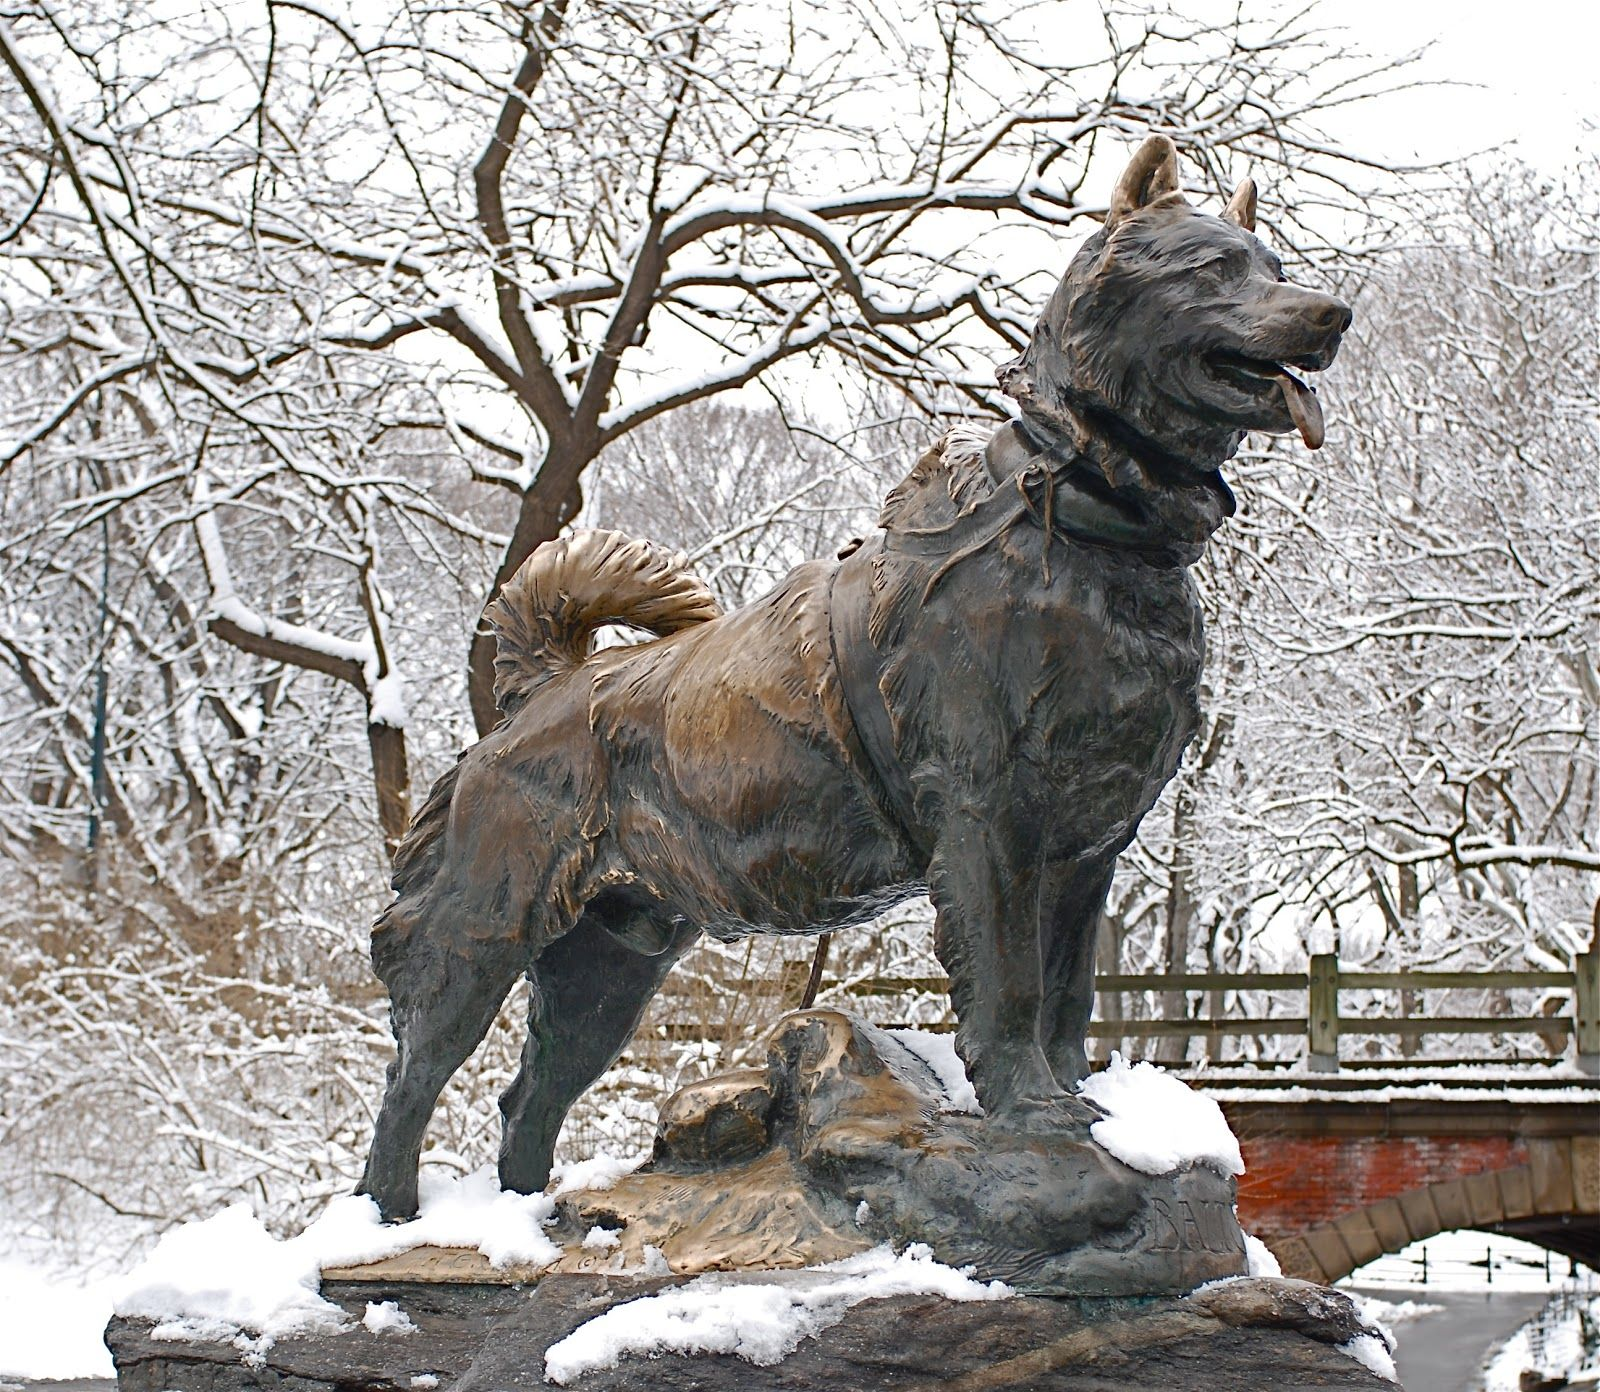 Bronze Statue Of Balto In Central Park New York City It Honors